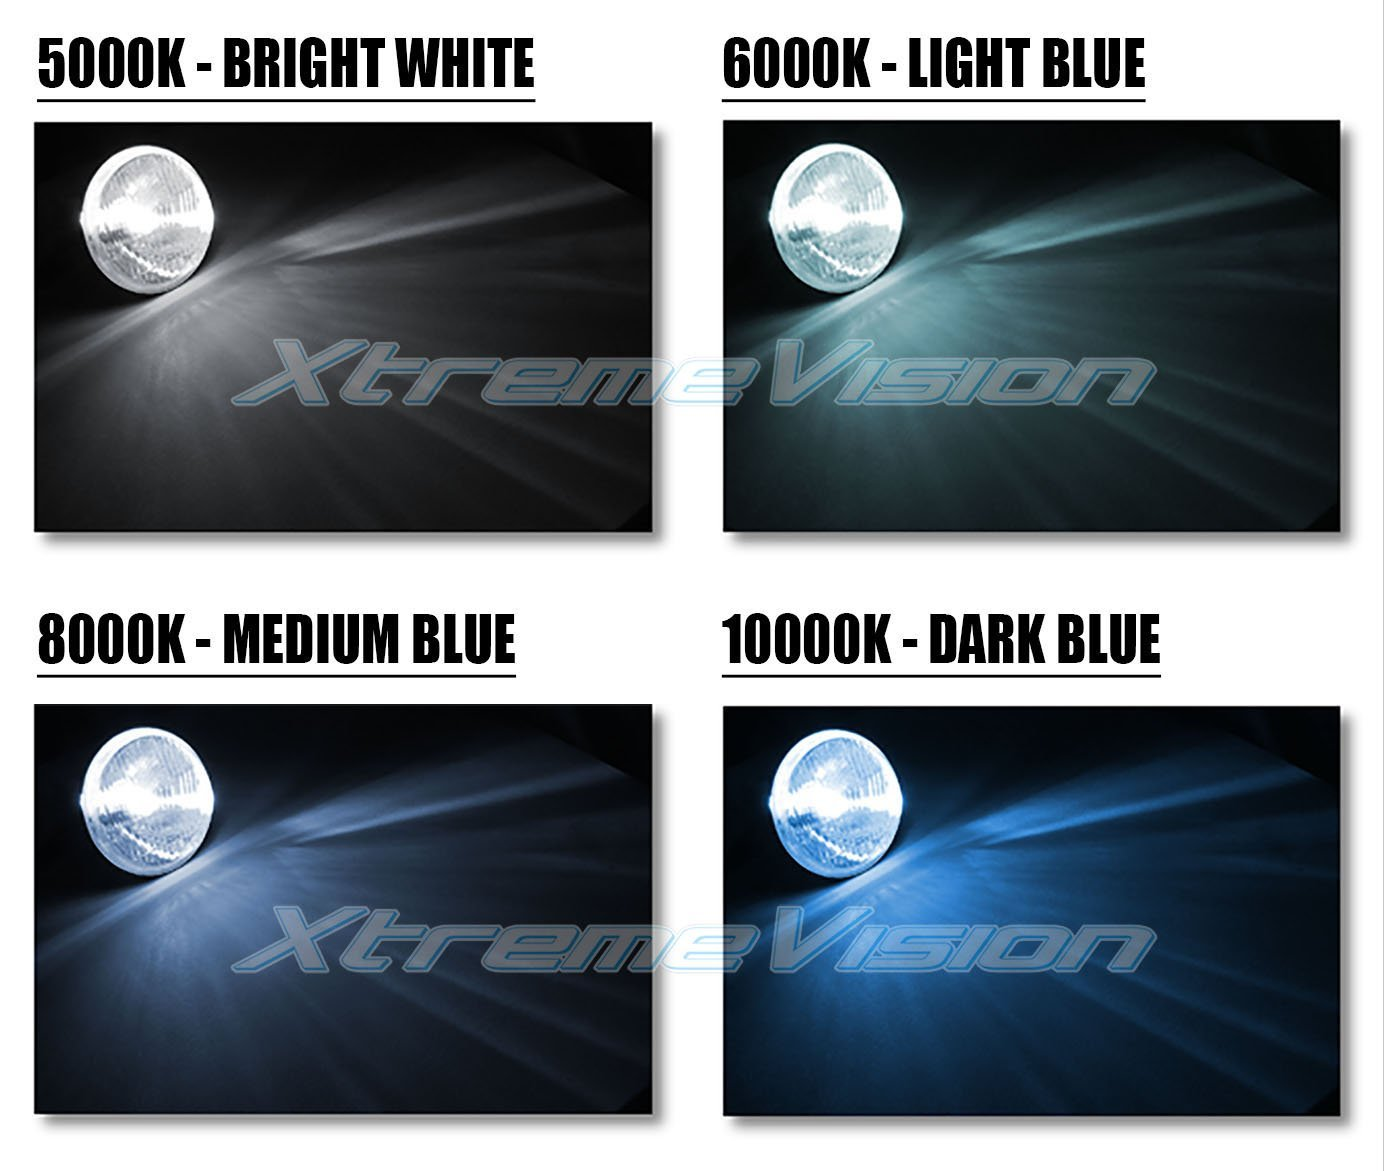 10 Best Hid Xenon Kits To Buy With Reviews 2017